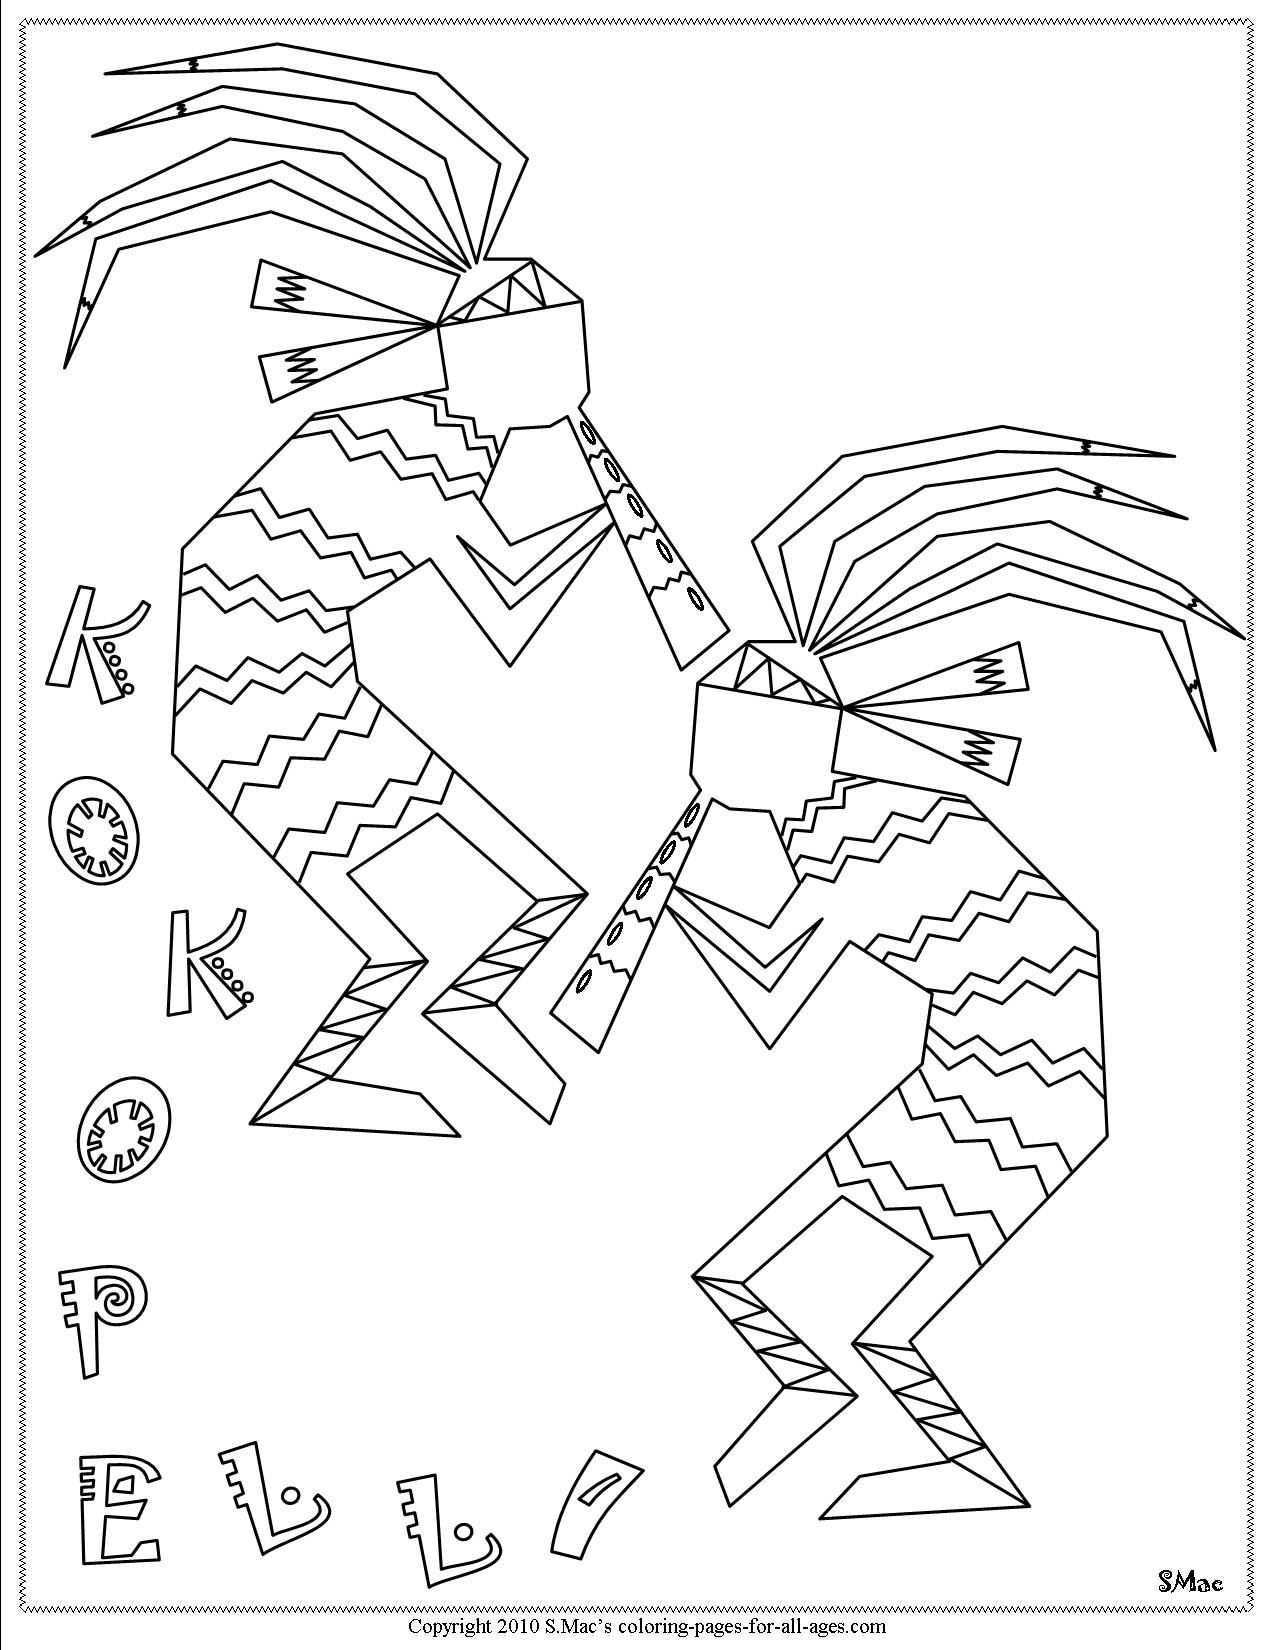 Kokopelli Coloring Pages Native American Symbols Coloring Pages